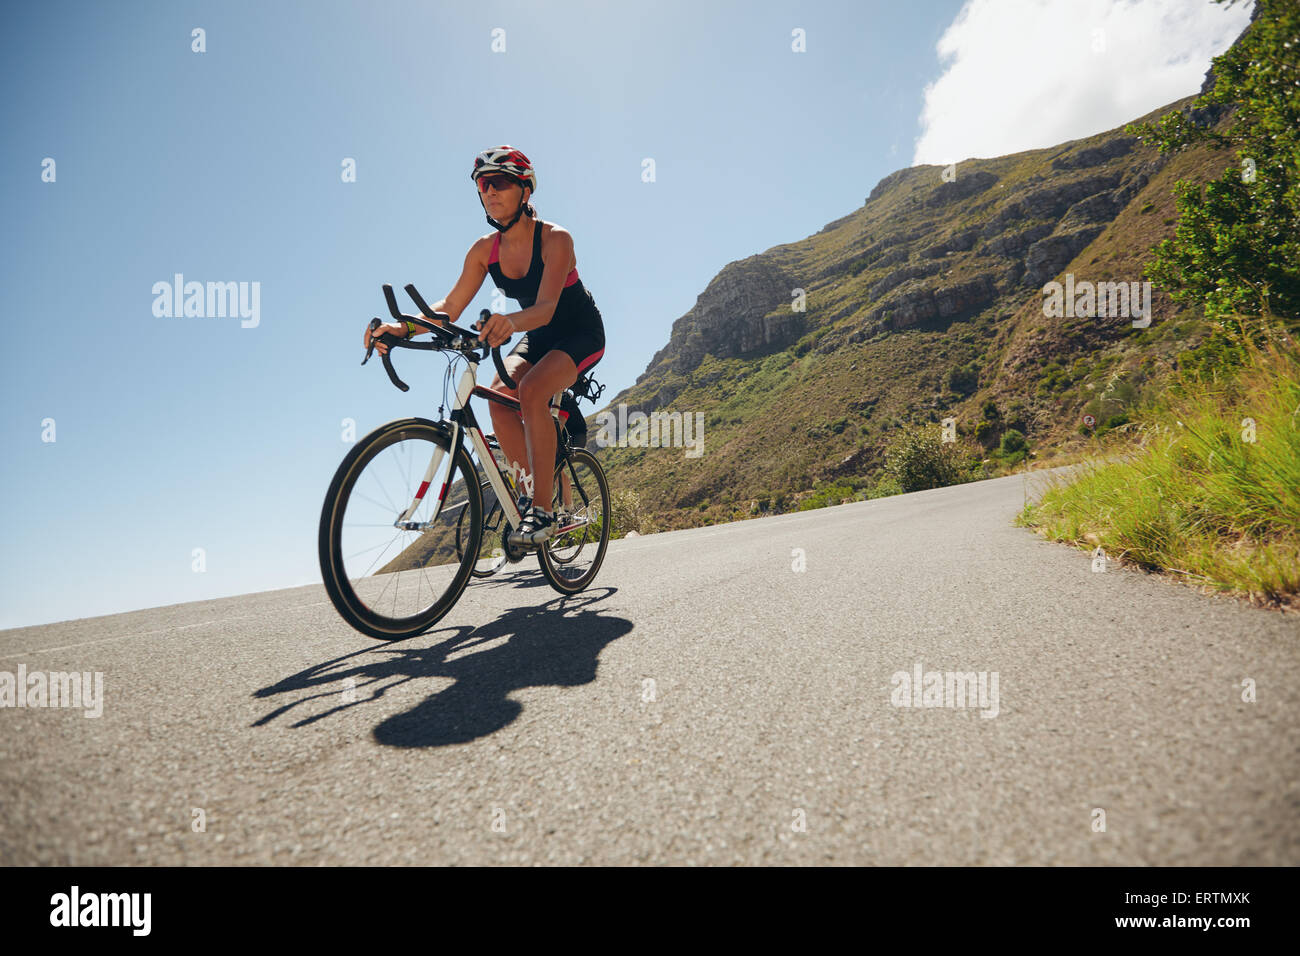 Woman competing in the cycling leg of a triathlon with competitor. Triathletes riding bicycle on open road. - Stock Image